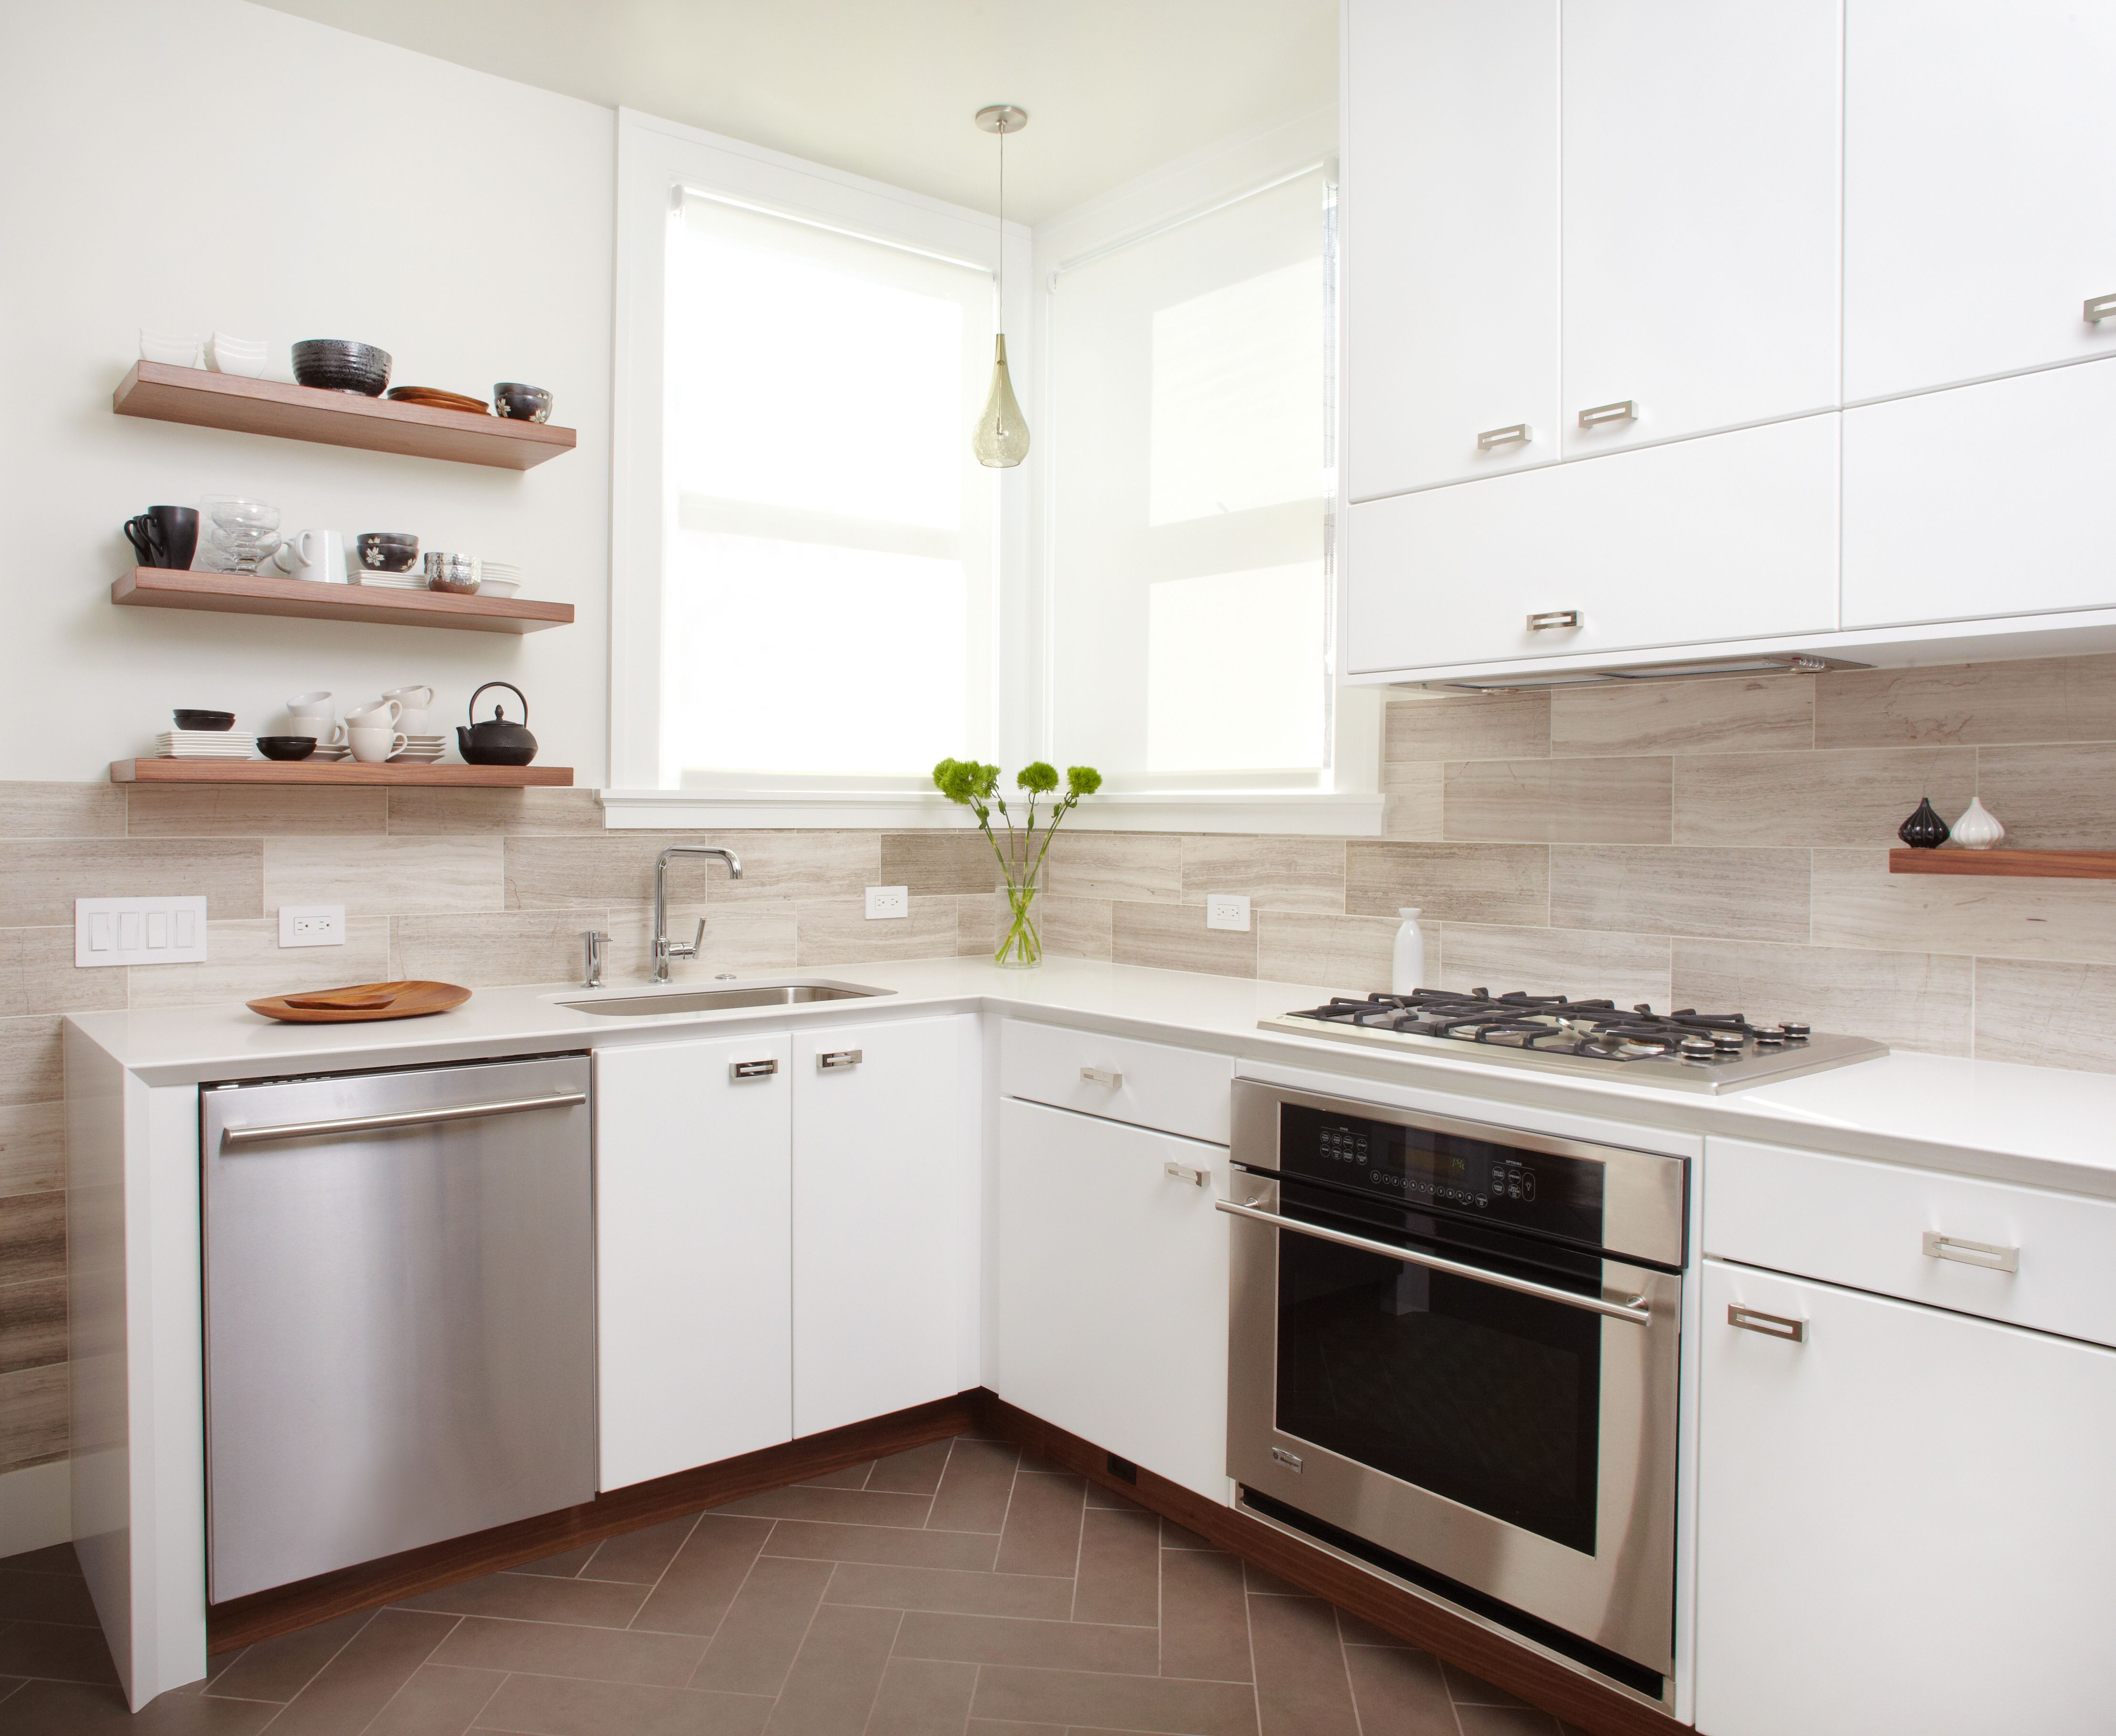 Small modern kitchen in white | Home Designs Project